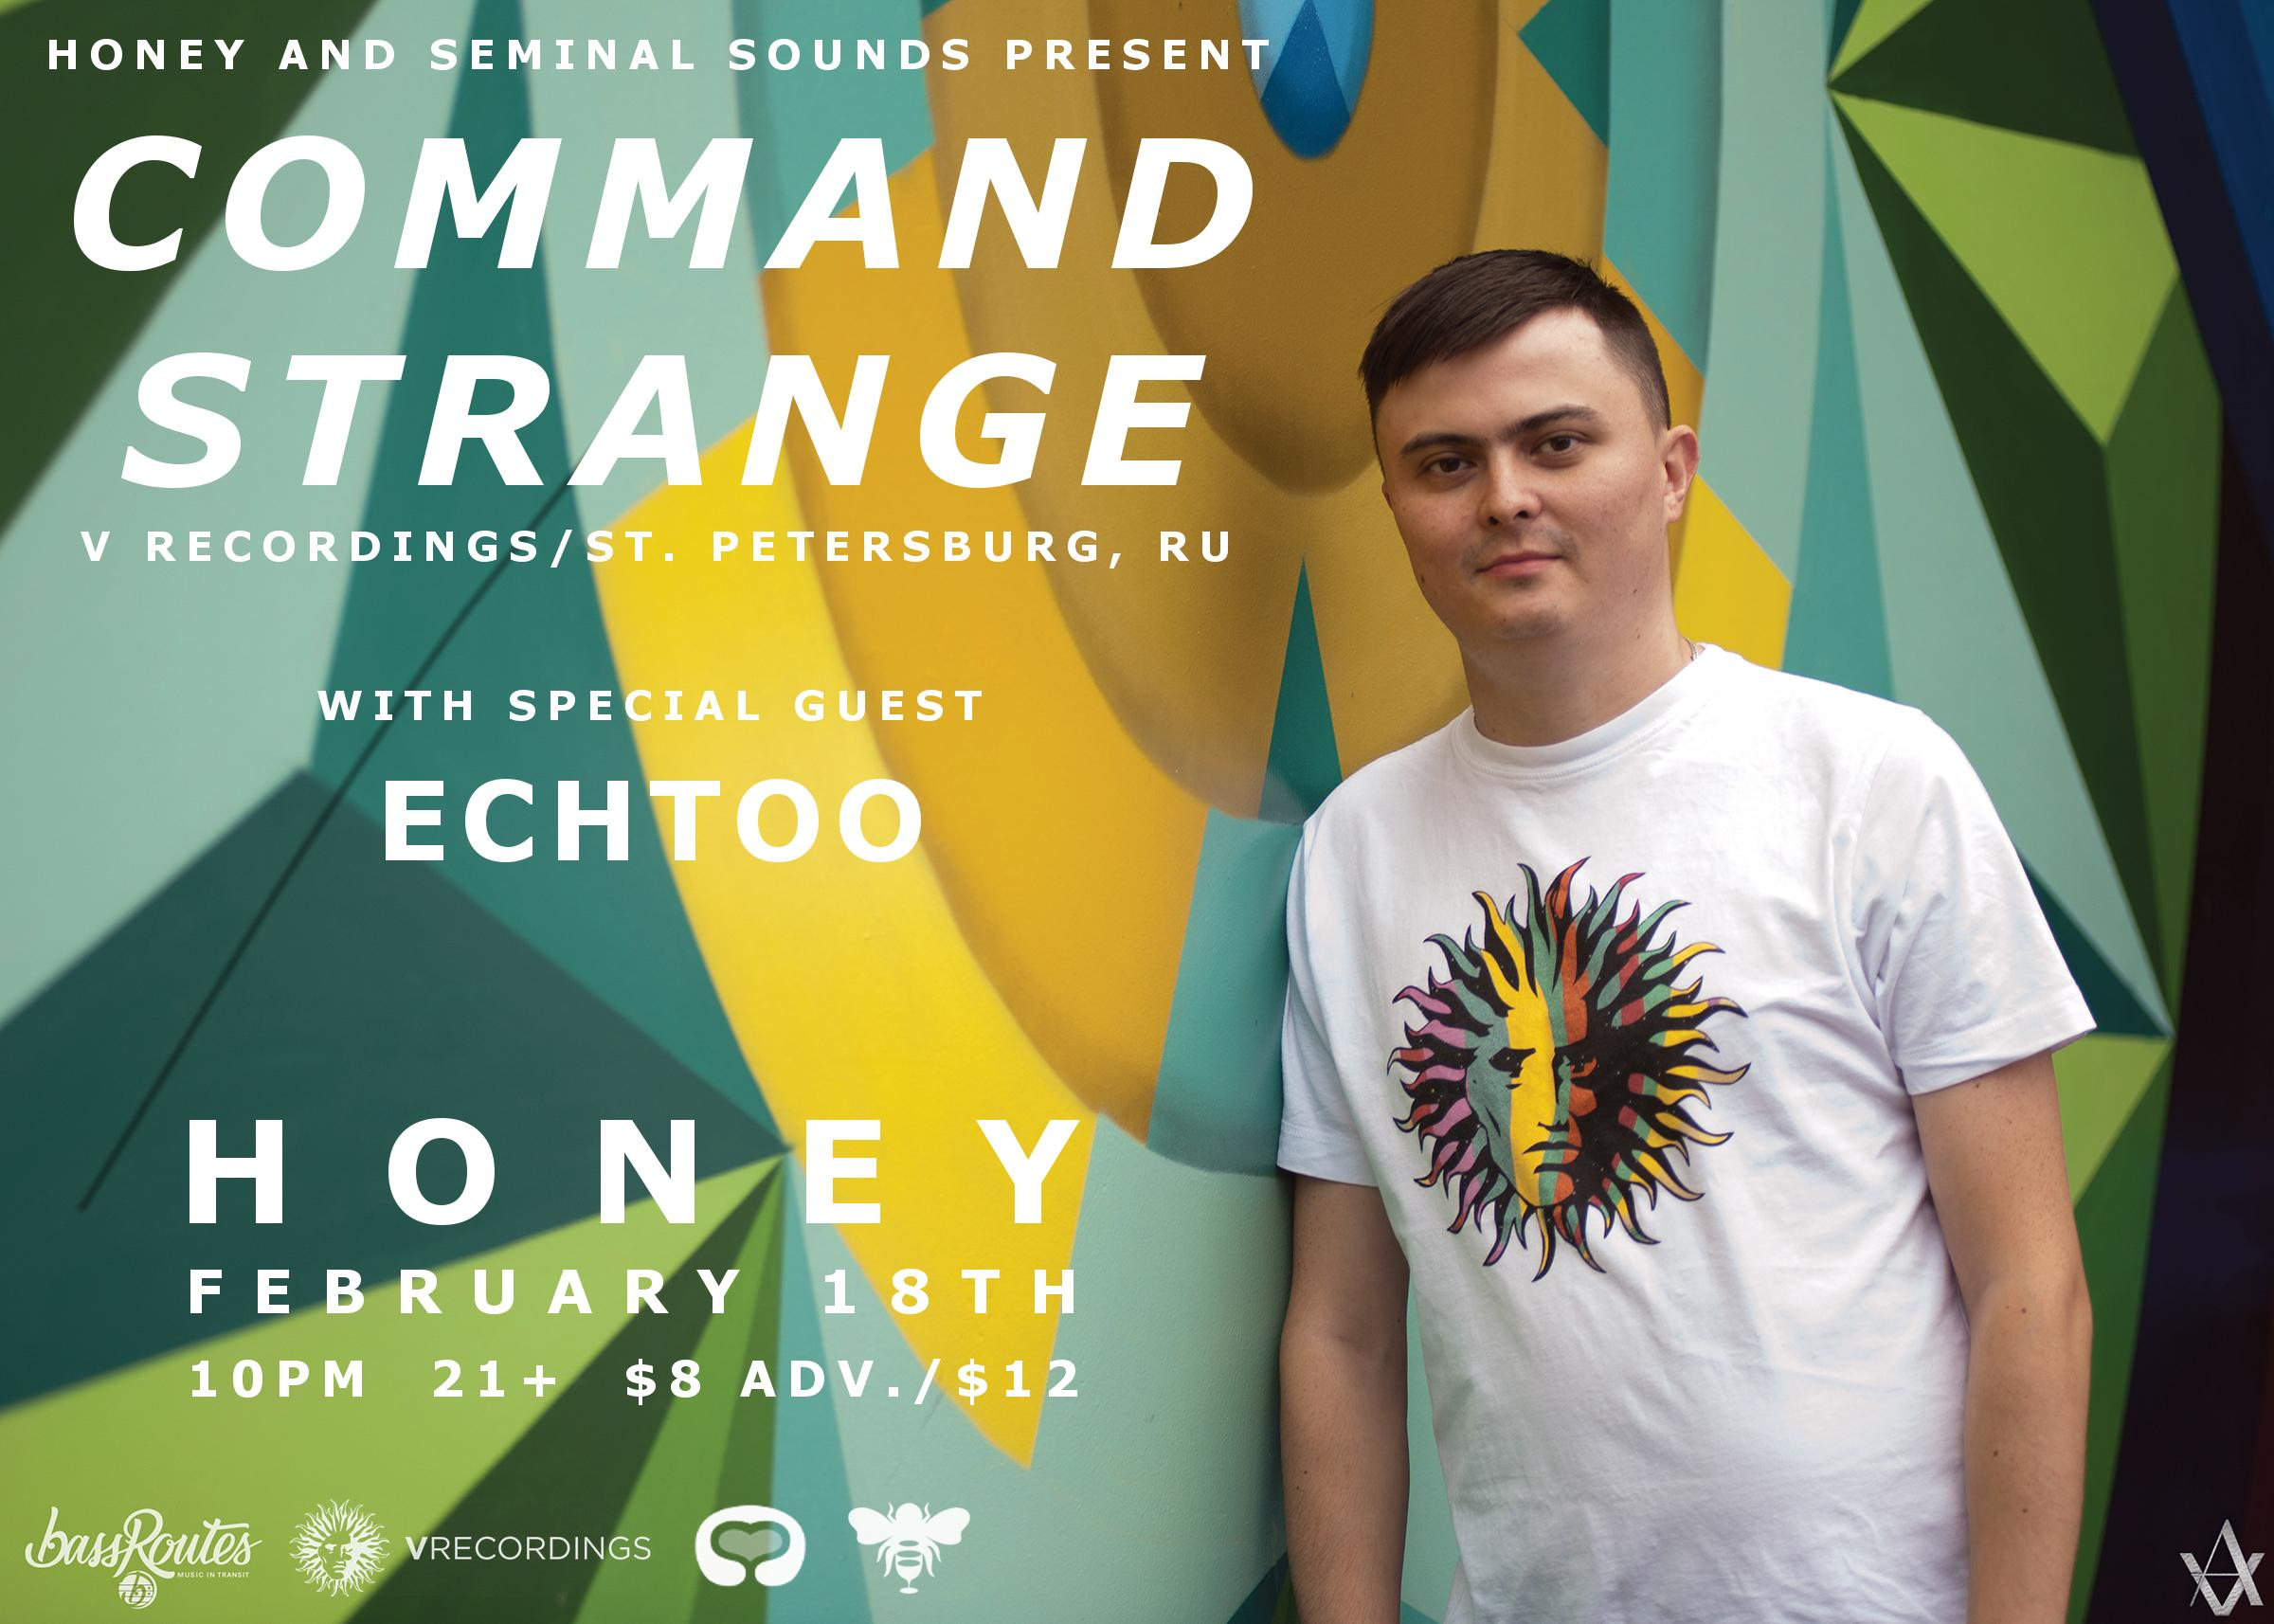 Command Strange with special guest Echtoo at Honey